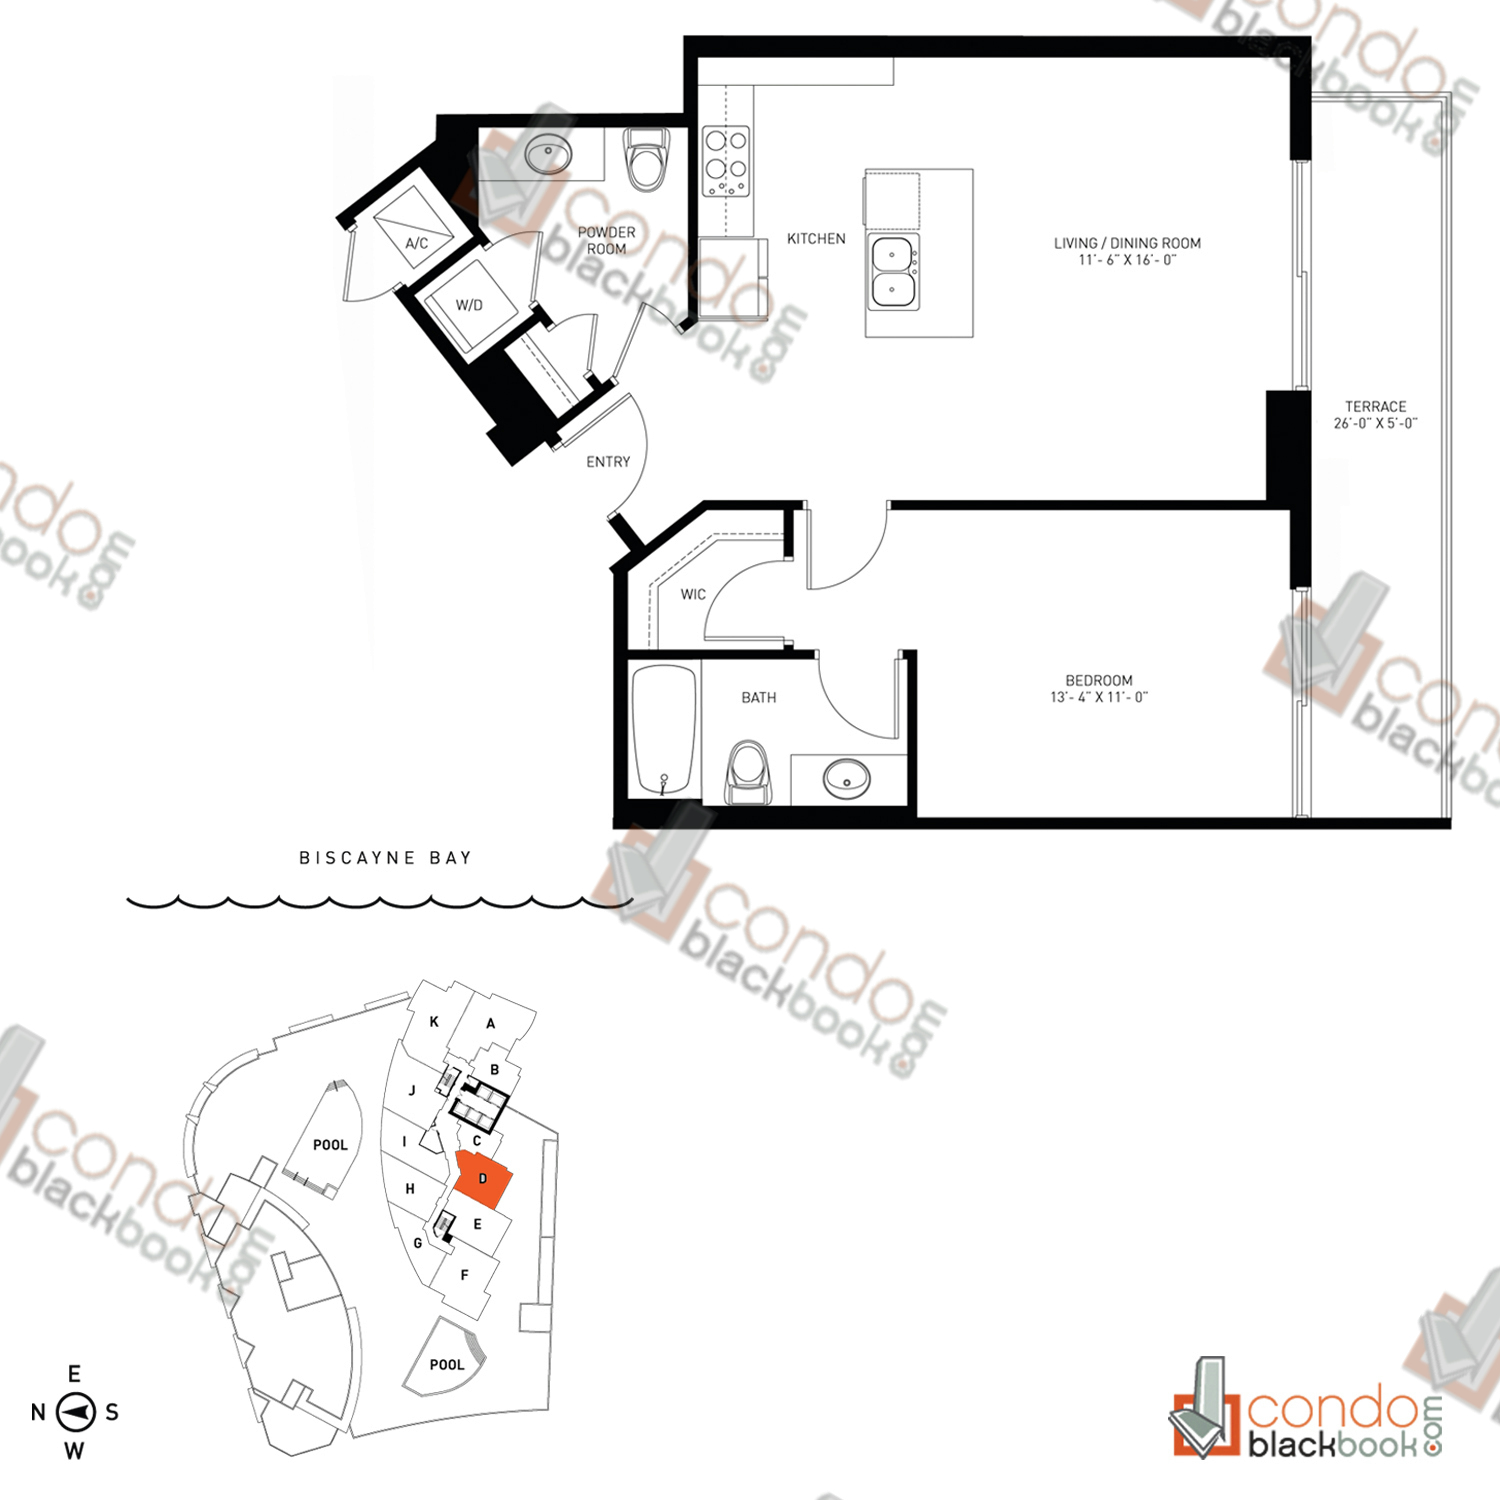 Floor plan for Quantum on the Bay Edgewater Miami, model Residence_D, line South Tower - 07, 1/1.5 bedrooms, 780 sq ft